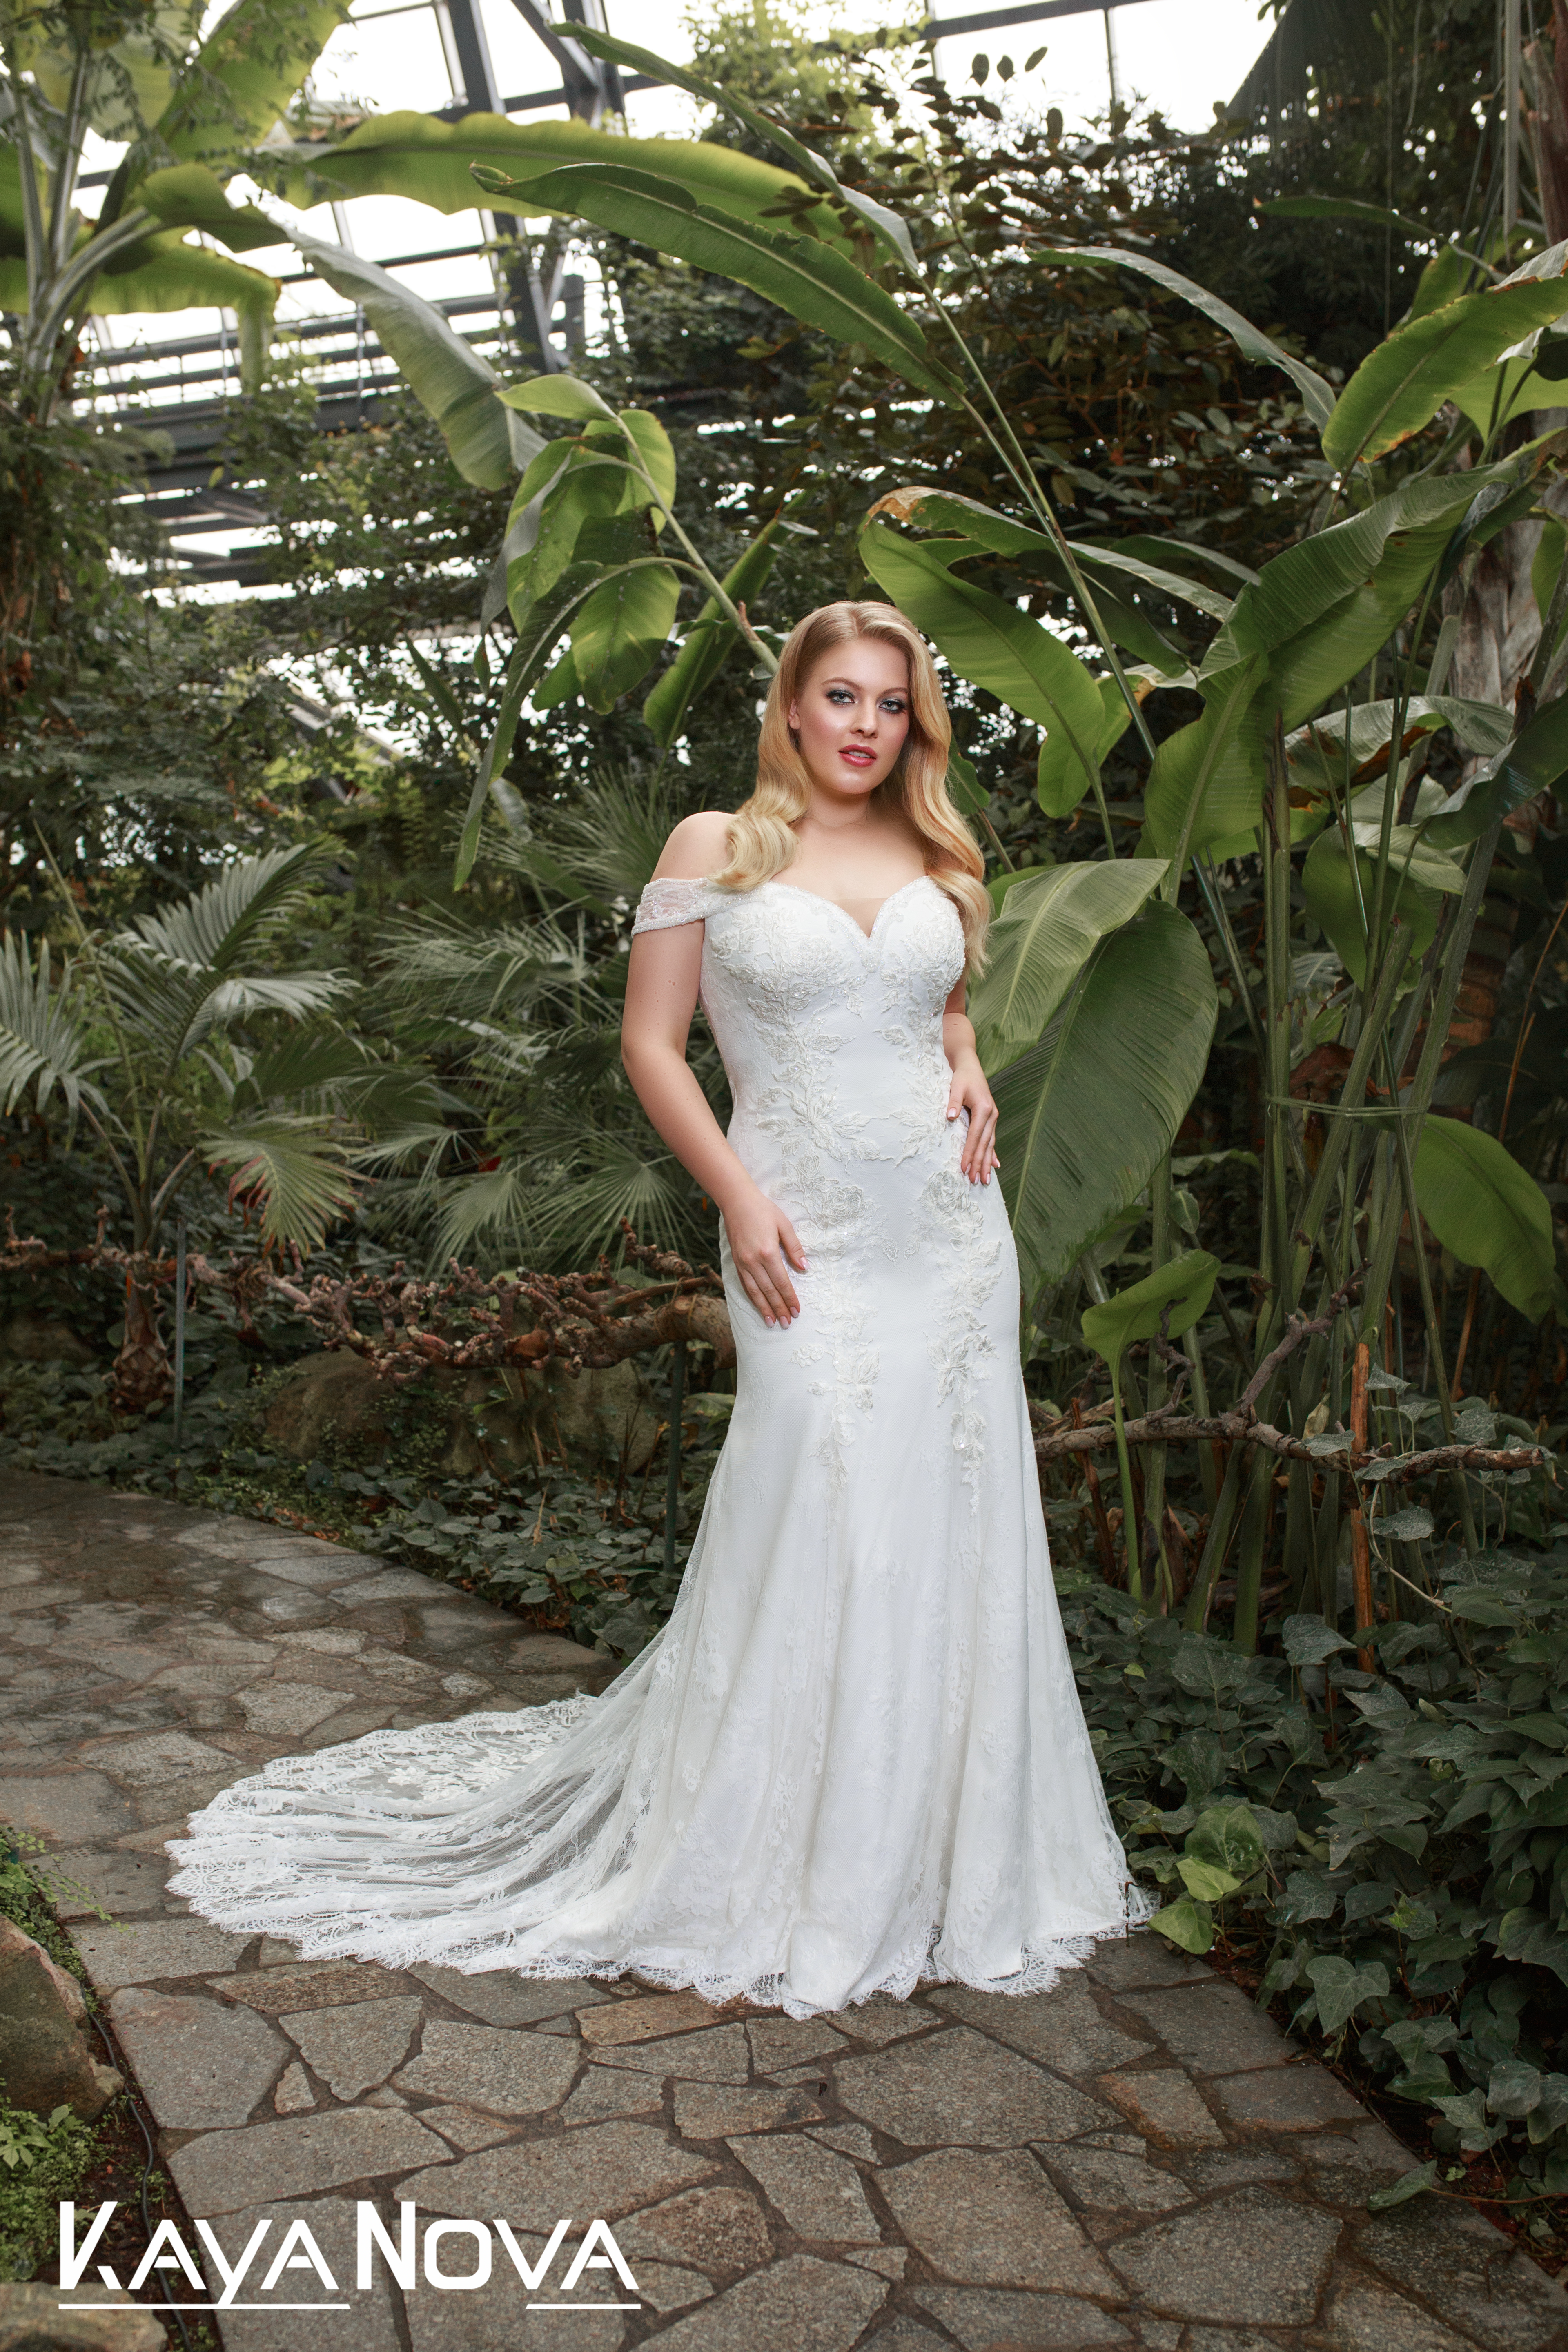 https://kayawedding.com/images/stories/virtuemart/product/kris2.jpg